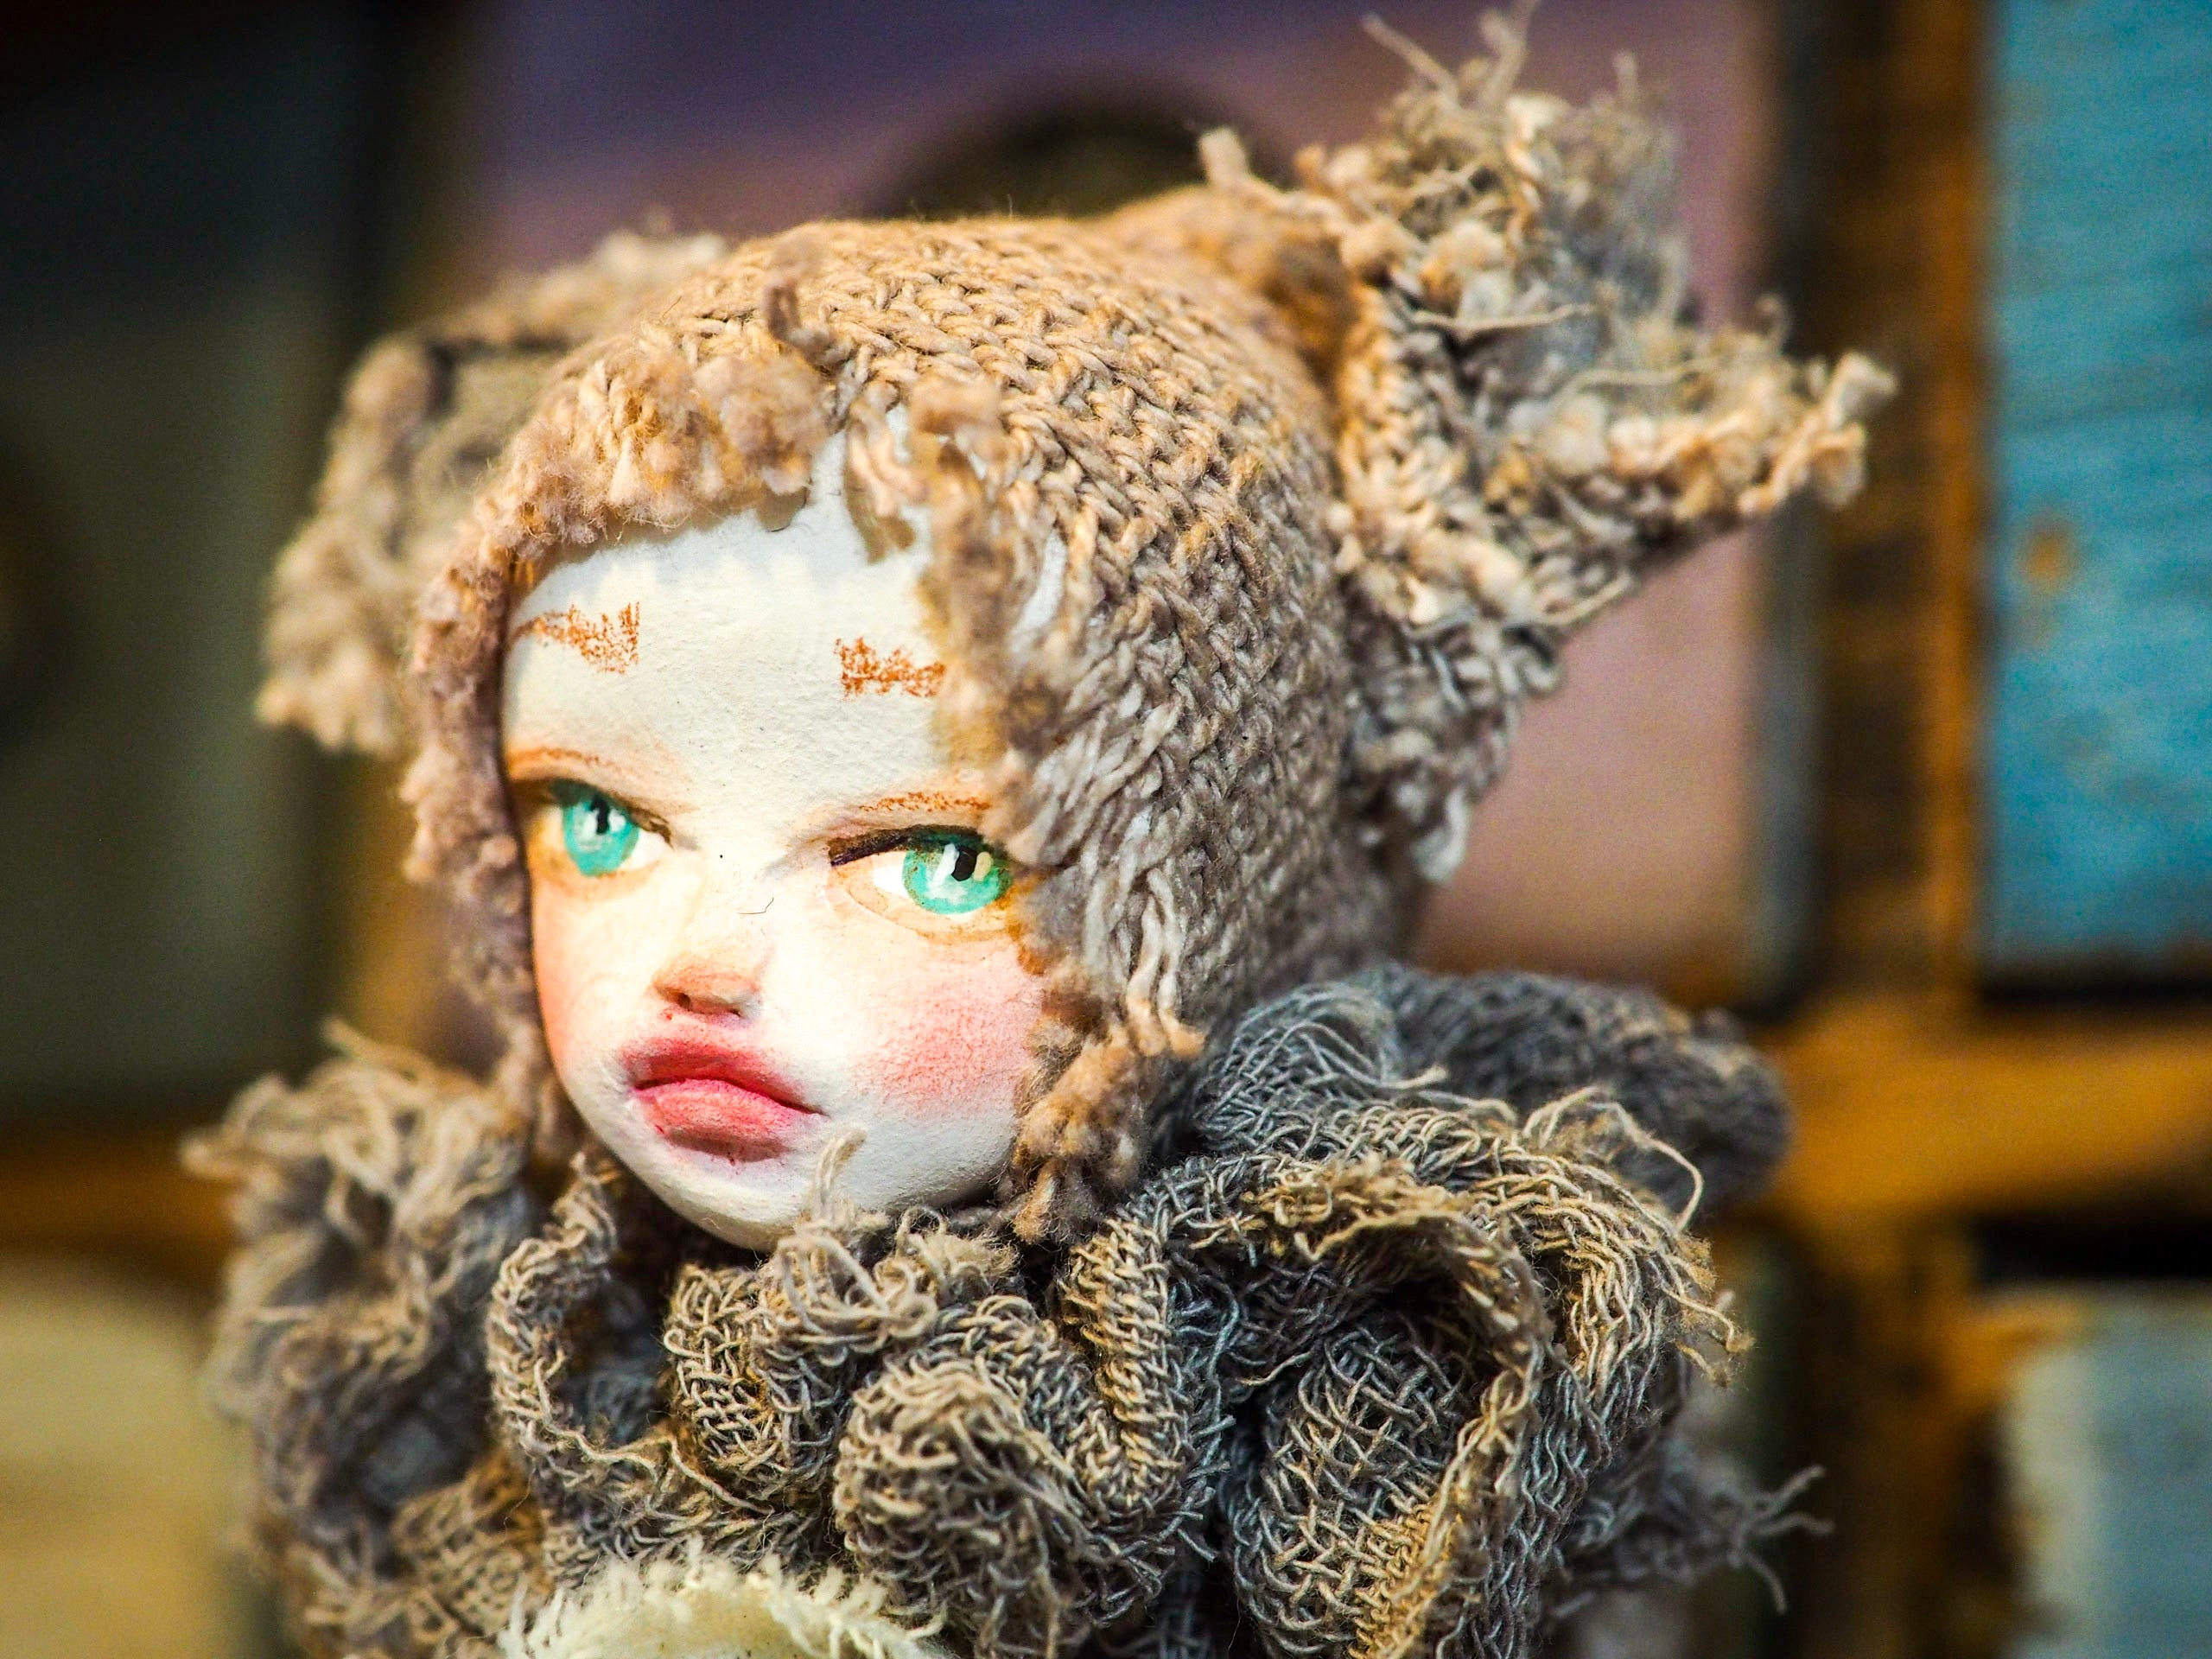 THE SQUIRREL - An original handmade doll by Danita Art, made with original patterns, organic fabric dyed using only natural ingredients like avocado peels, walnuts and marigolds. Each mini art doll in this toy collection is a mini work of huggable fabric art to be treasured by any collector of Danita's melancholic and fantastic work.